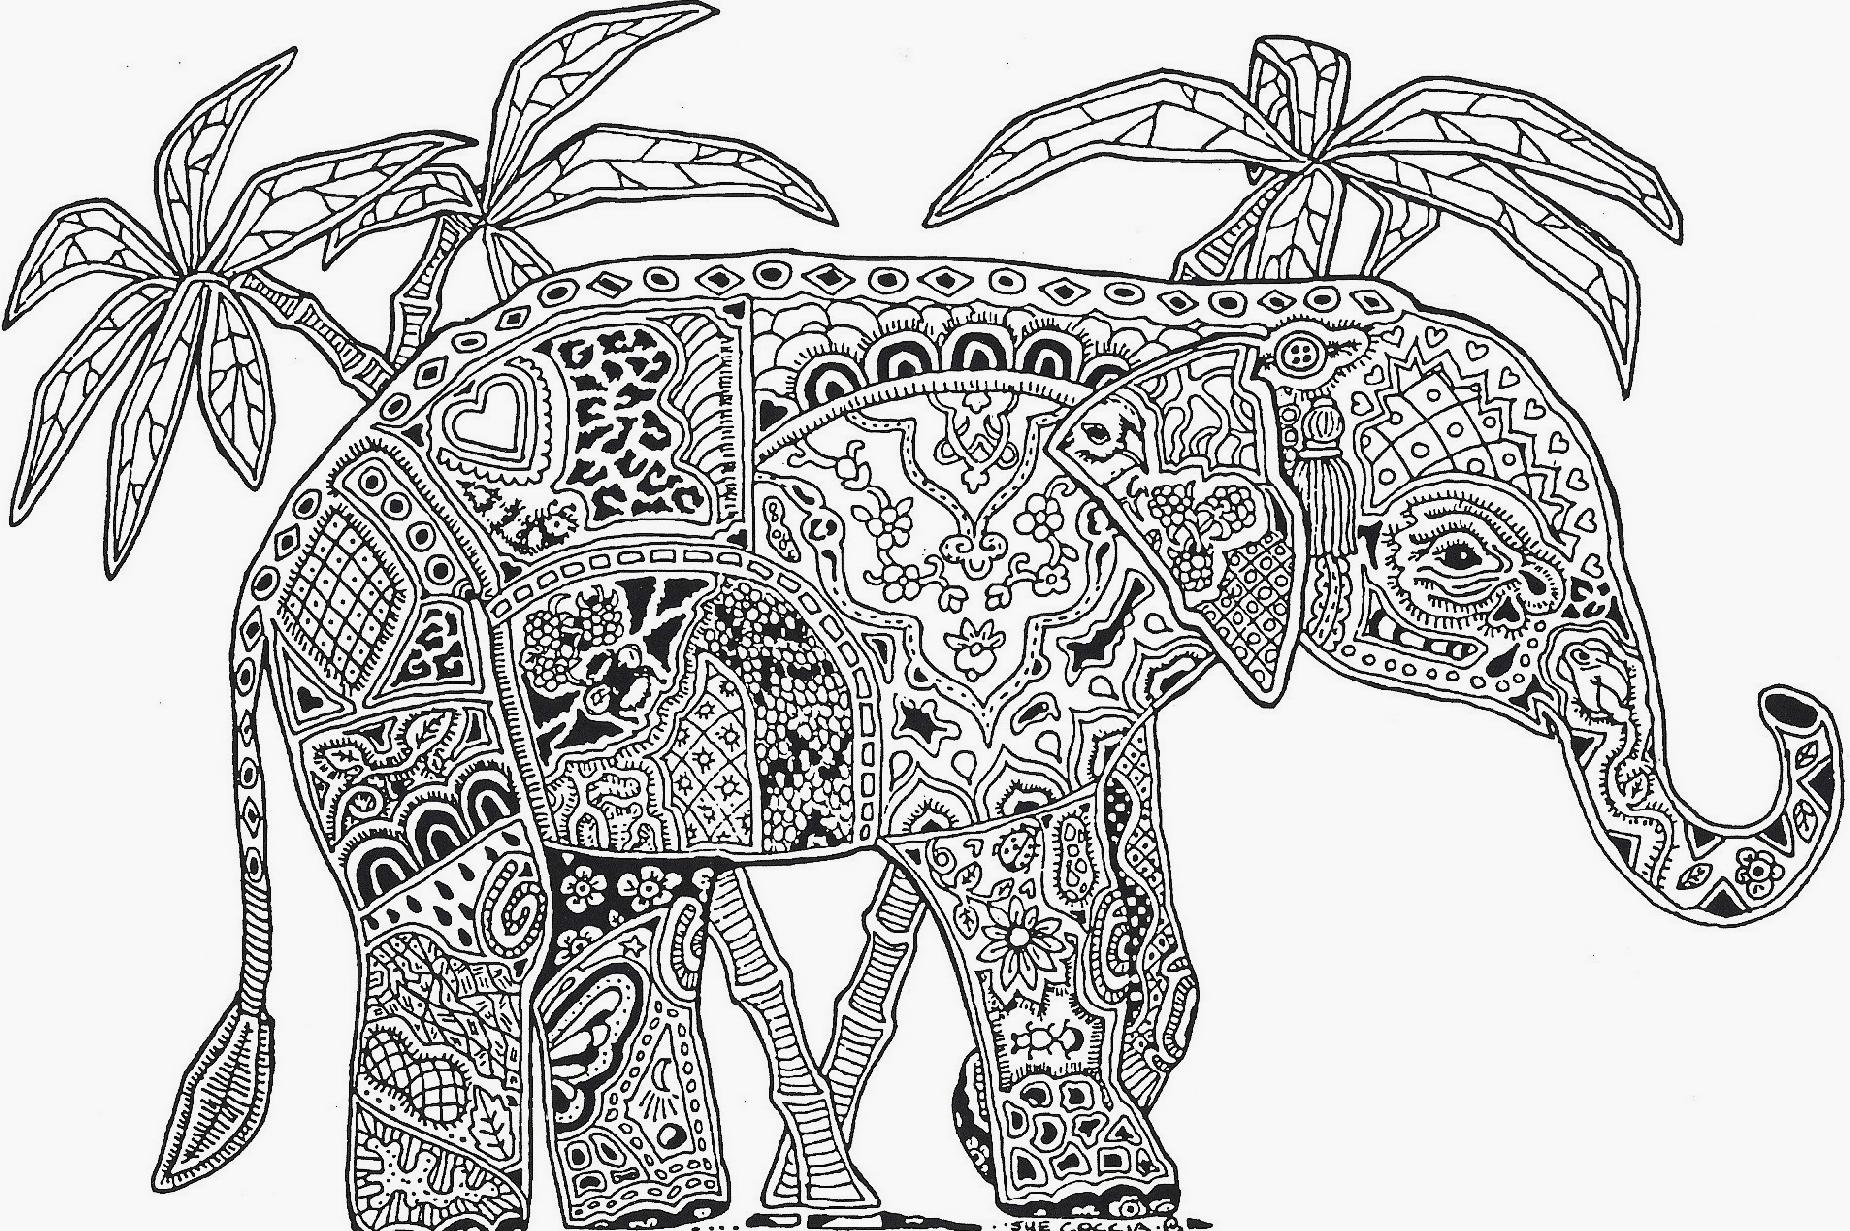 Elephant_Mandala_Coloring_Pages_01